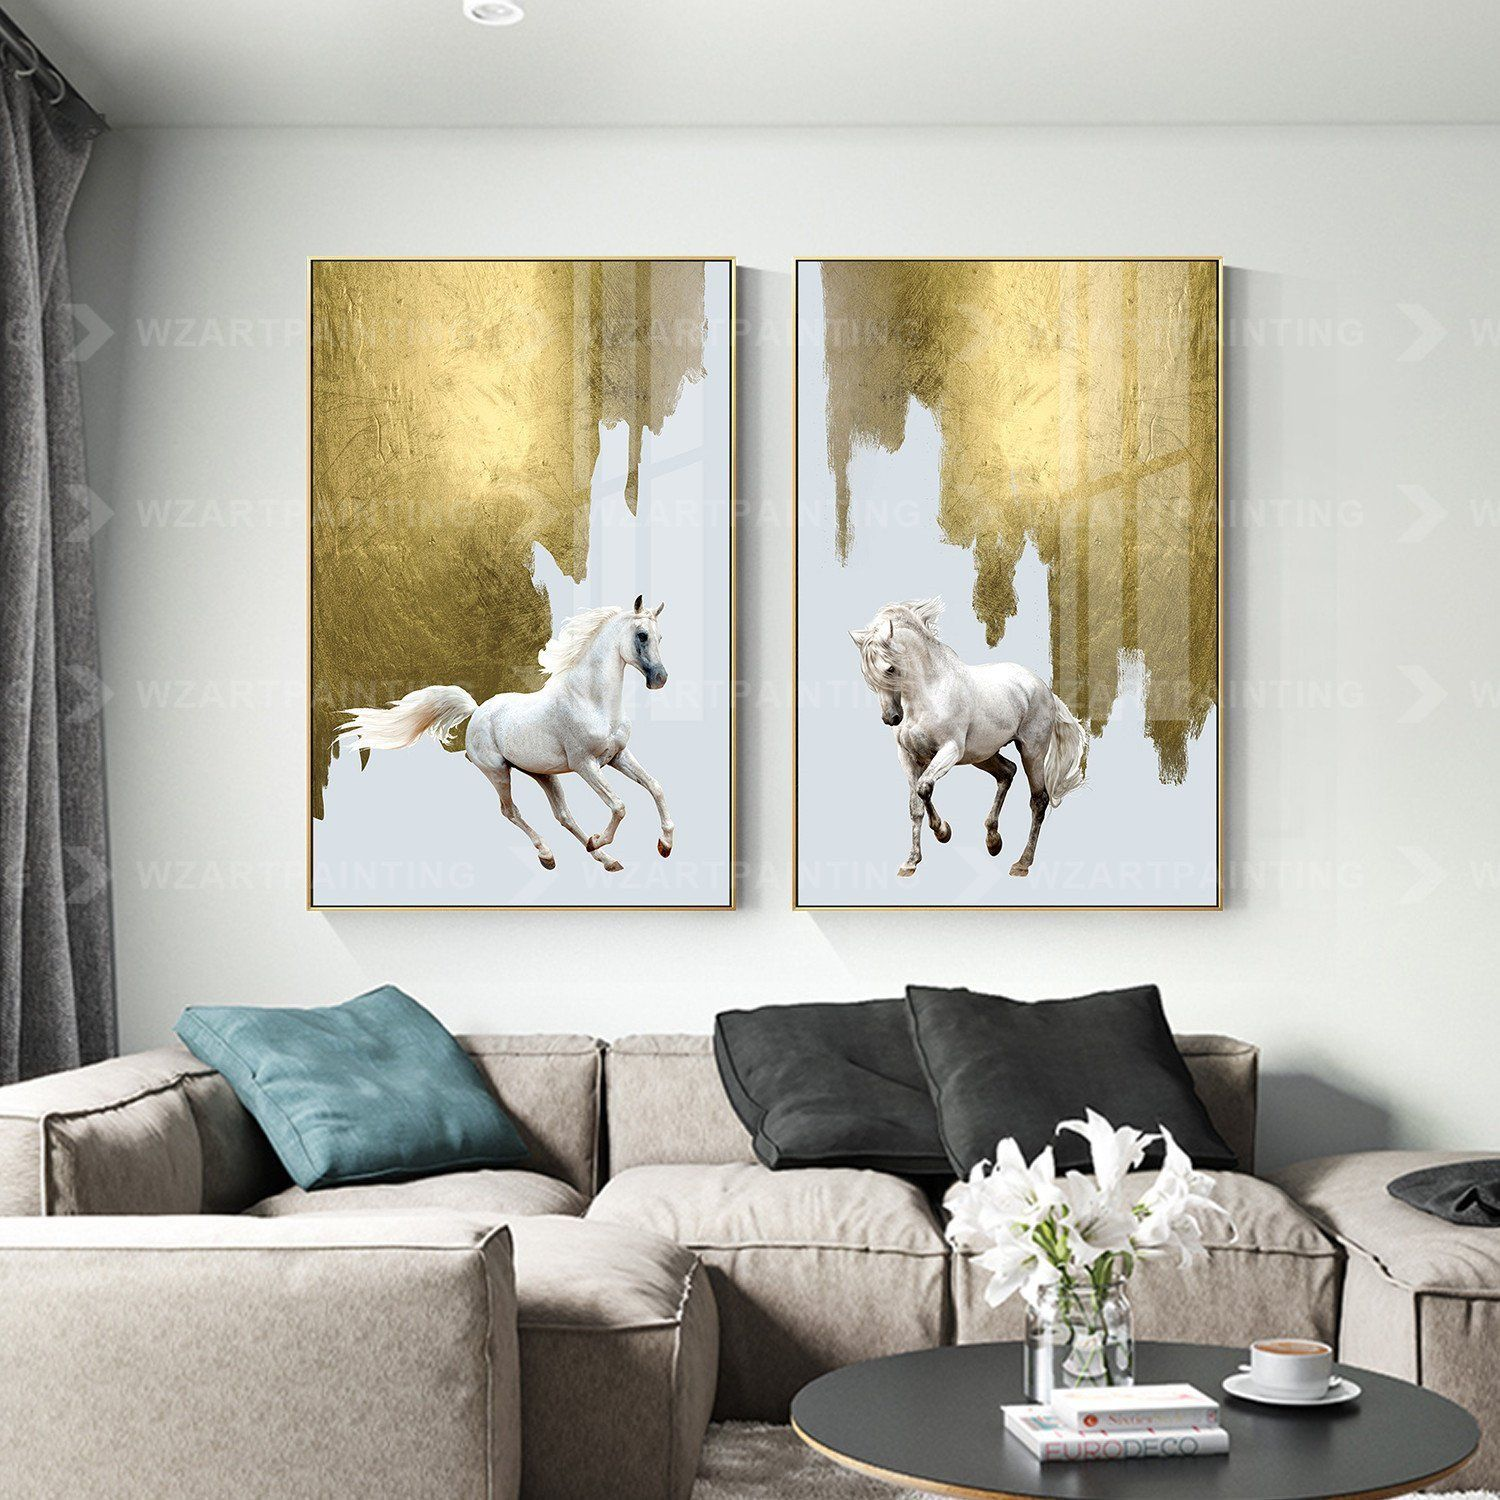 2 Pieces Gold Horse Animal Acrylic Wall Art Print Pictures On Etsy Acrylic Wall Art Wall Art Prints Canvas Painting